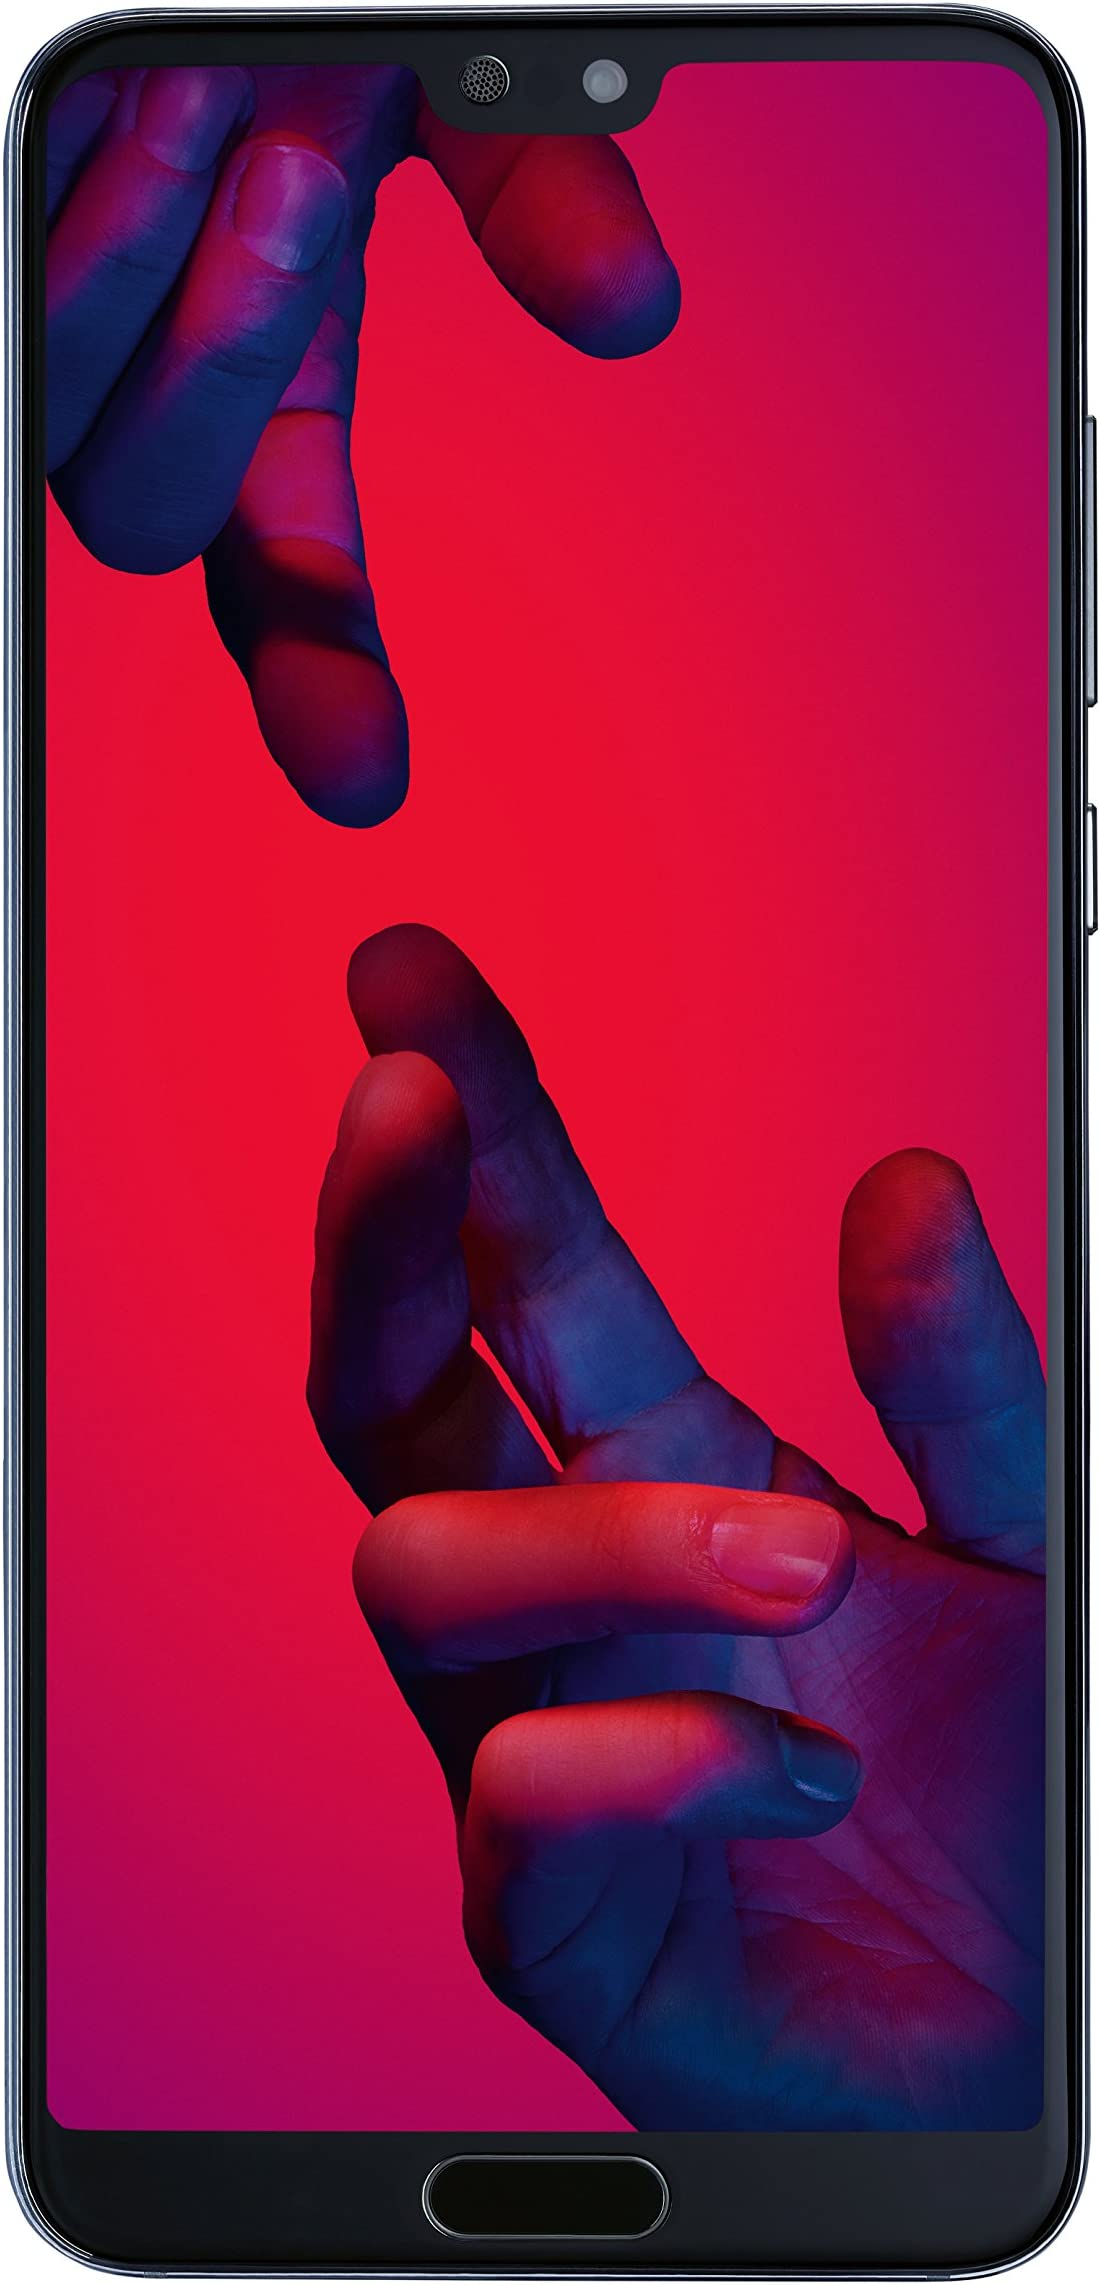 Huawei P20 Pro 128GB Dual-SIM Factory Unlocked 4G/LTE Smartphone (Midnight Blue) - International Version